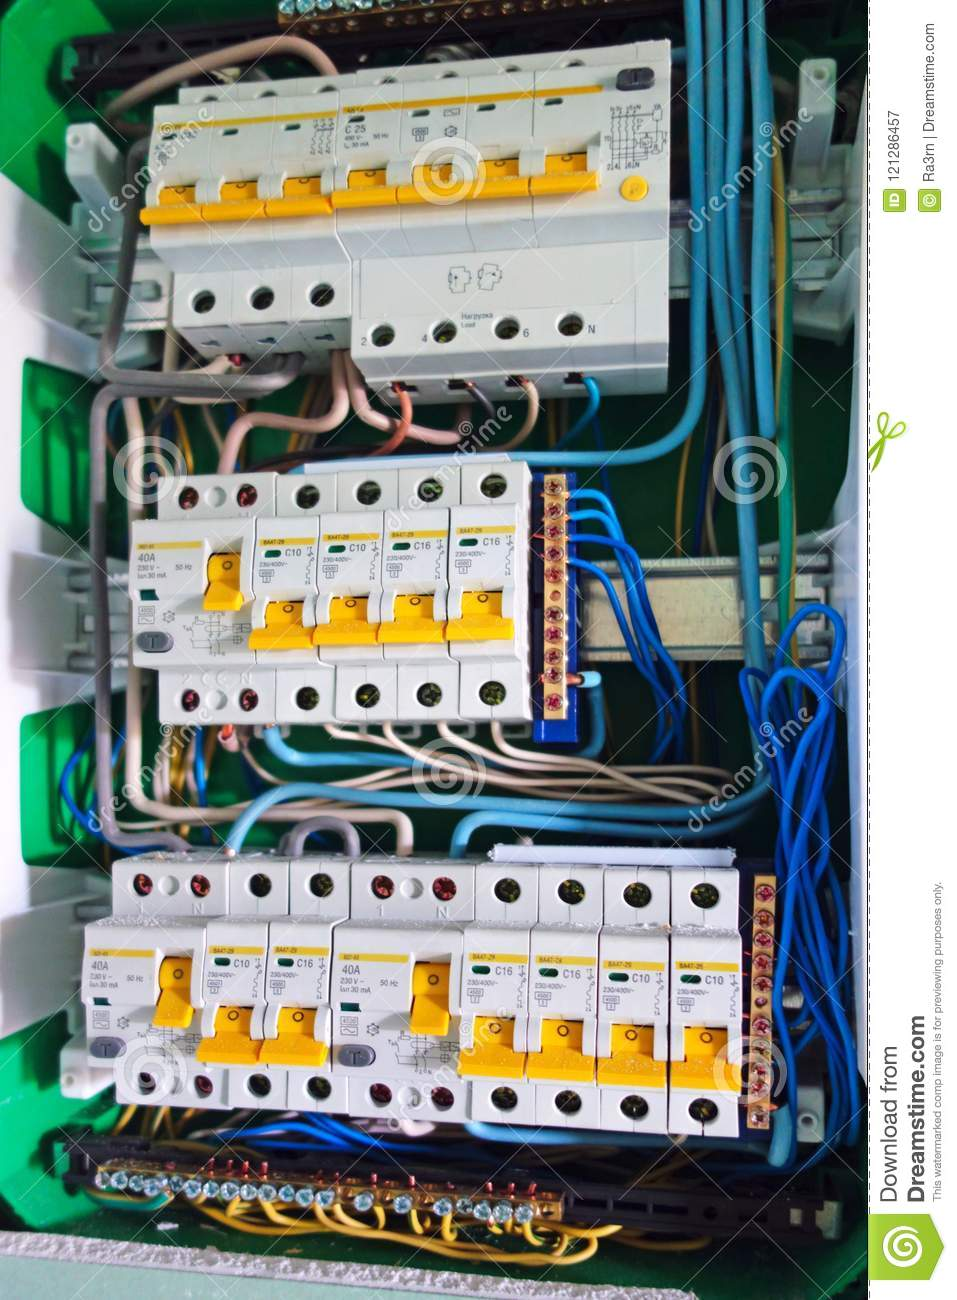 Superb Electric Board With Circuit Breakers Stock Image Image Of Wiring Digital Resources Remcakbiperorg